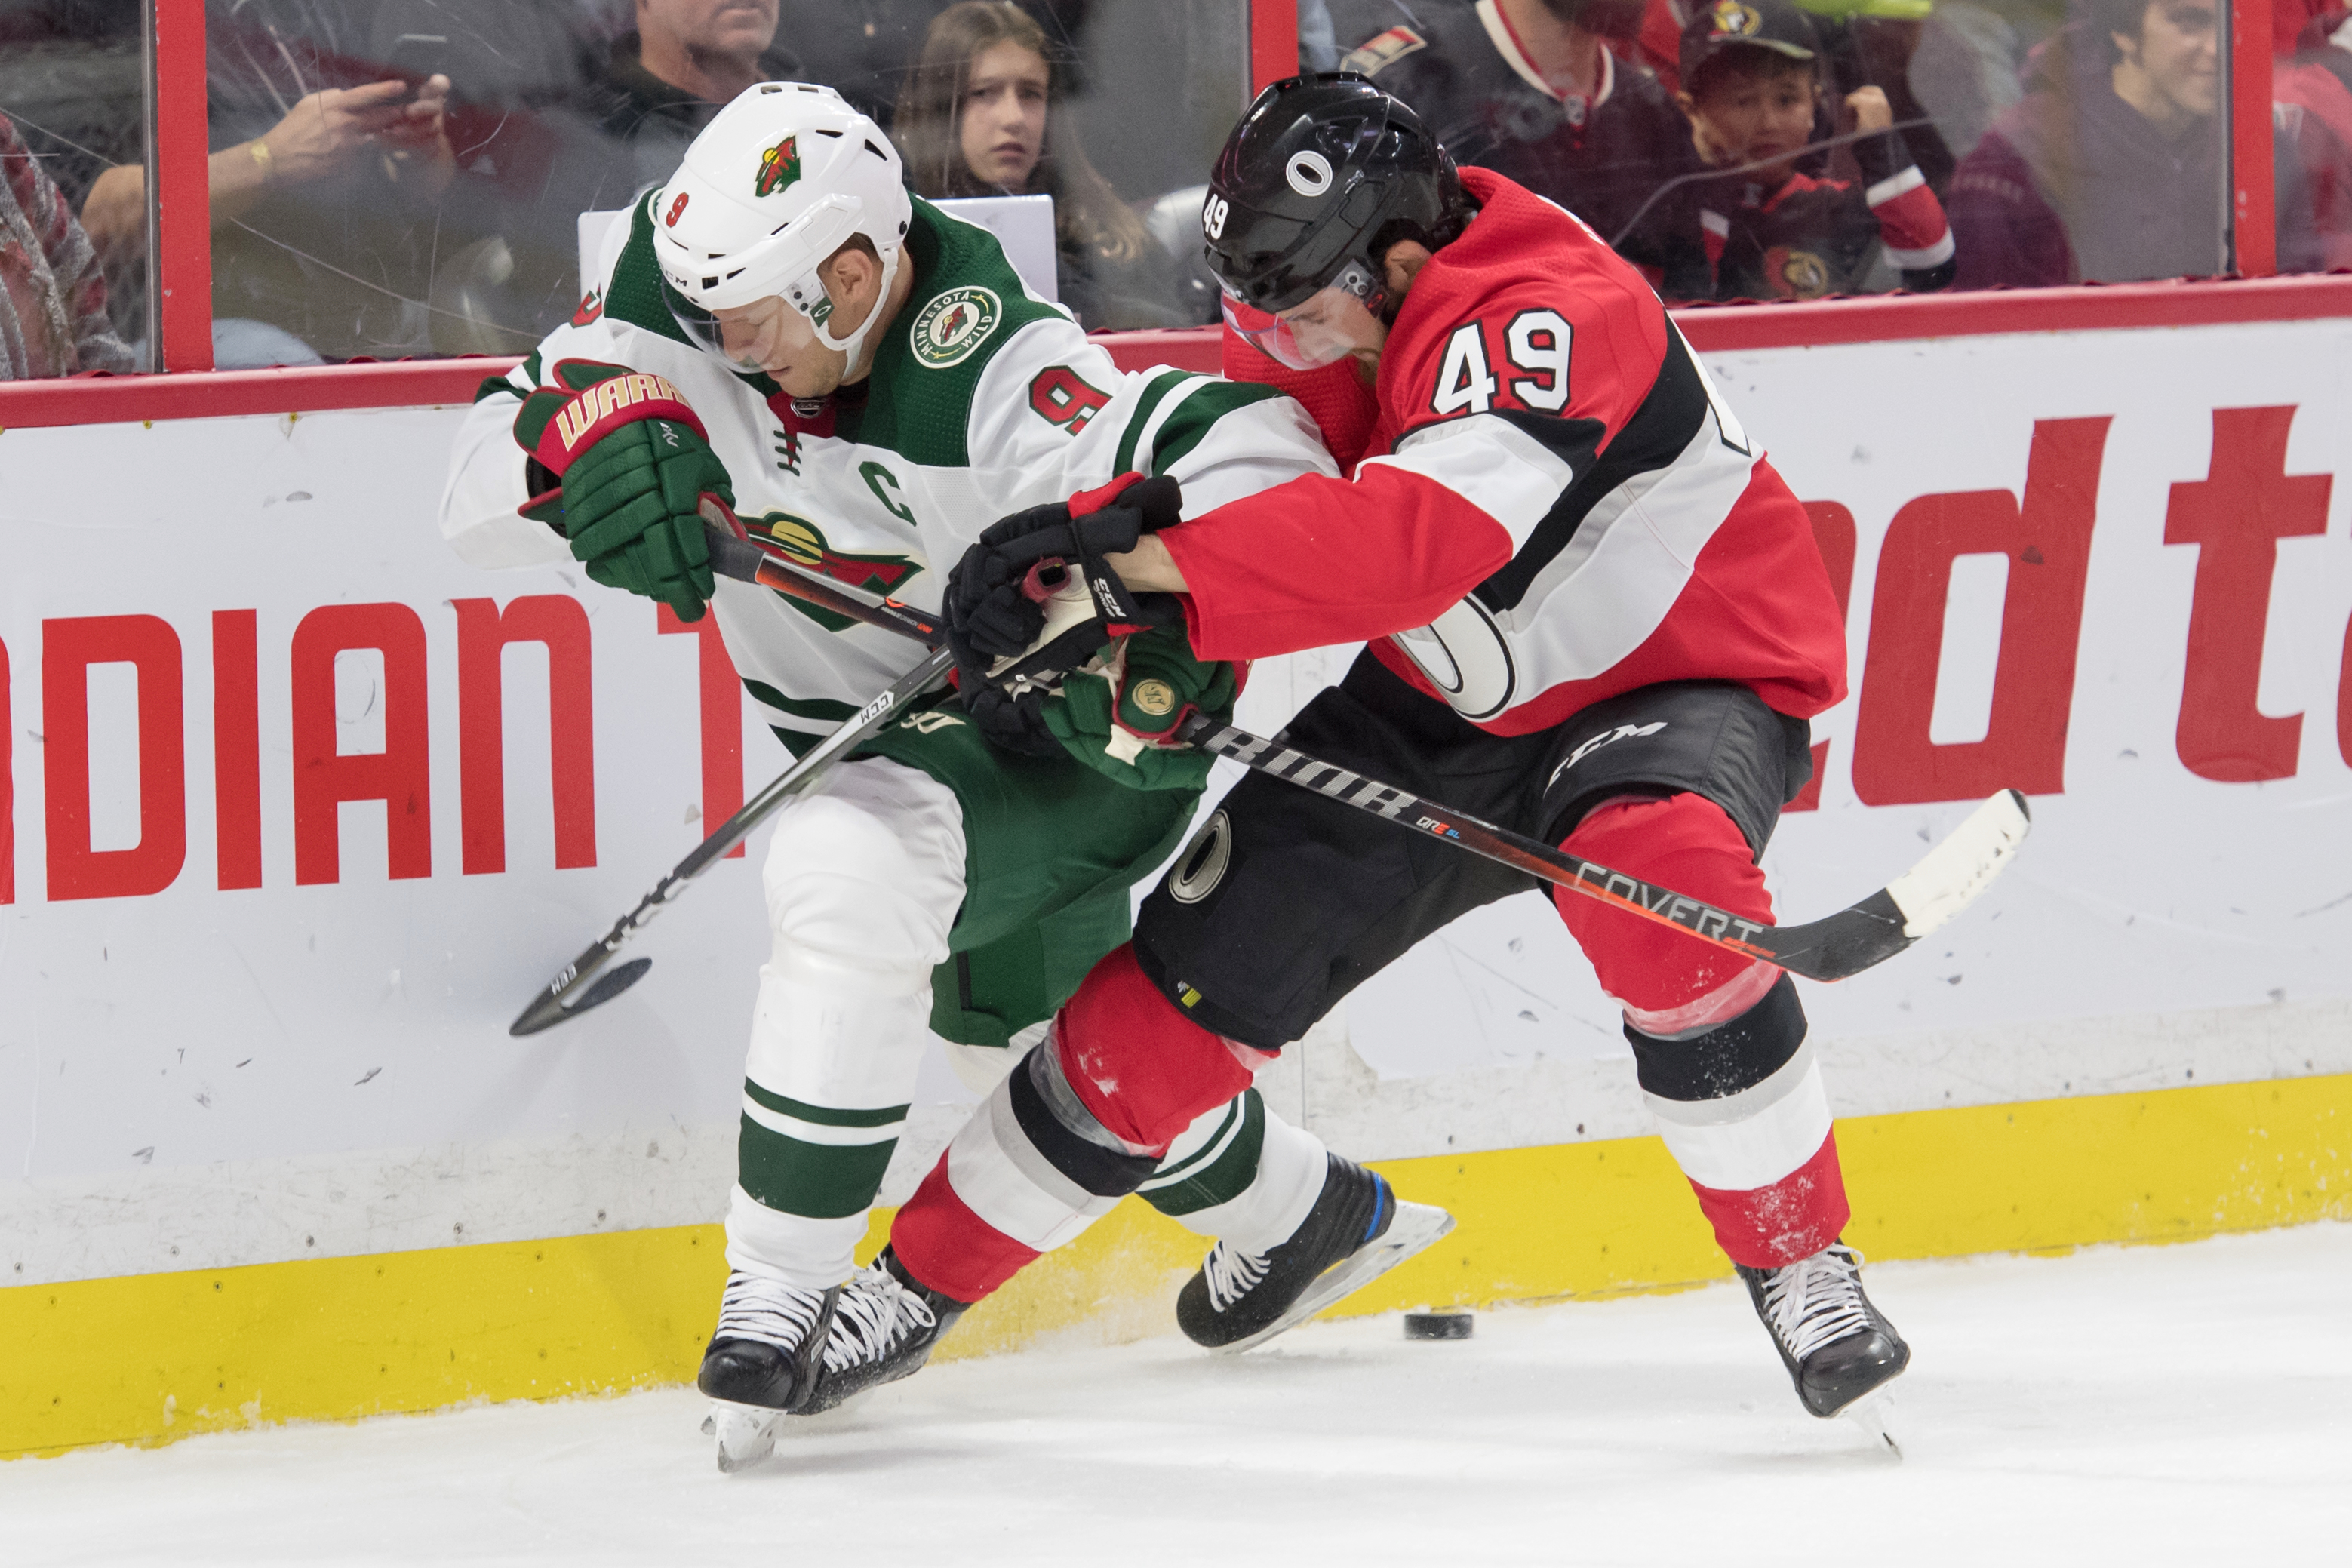 NHL: Minnesota Wild at Ottawa Senators